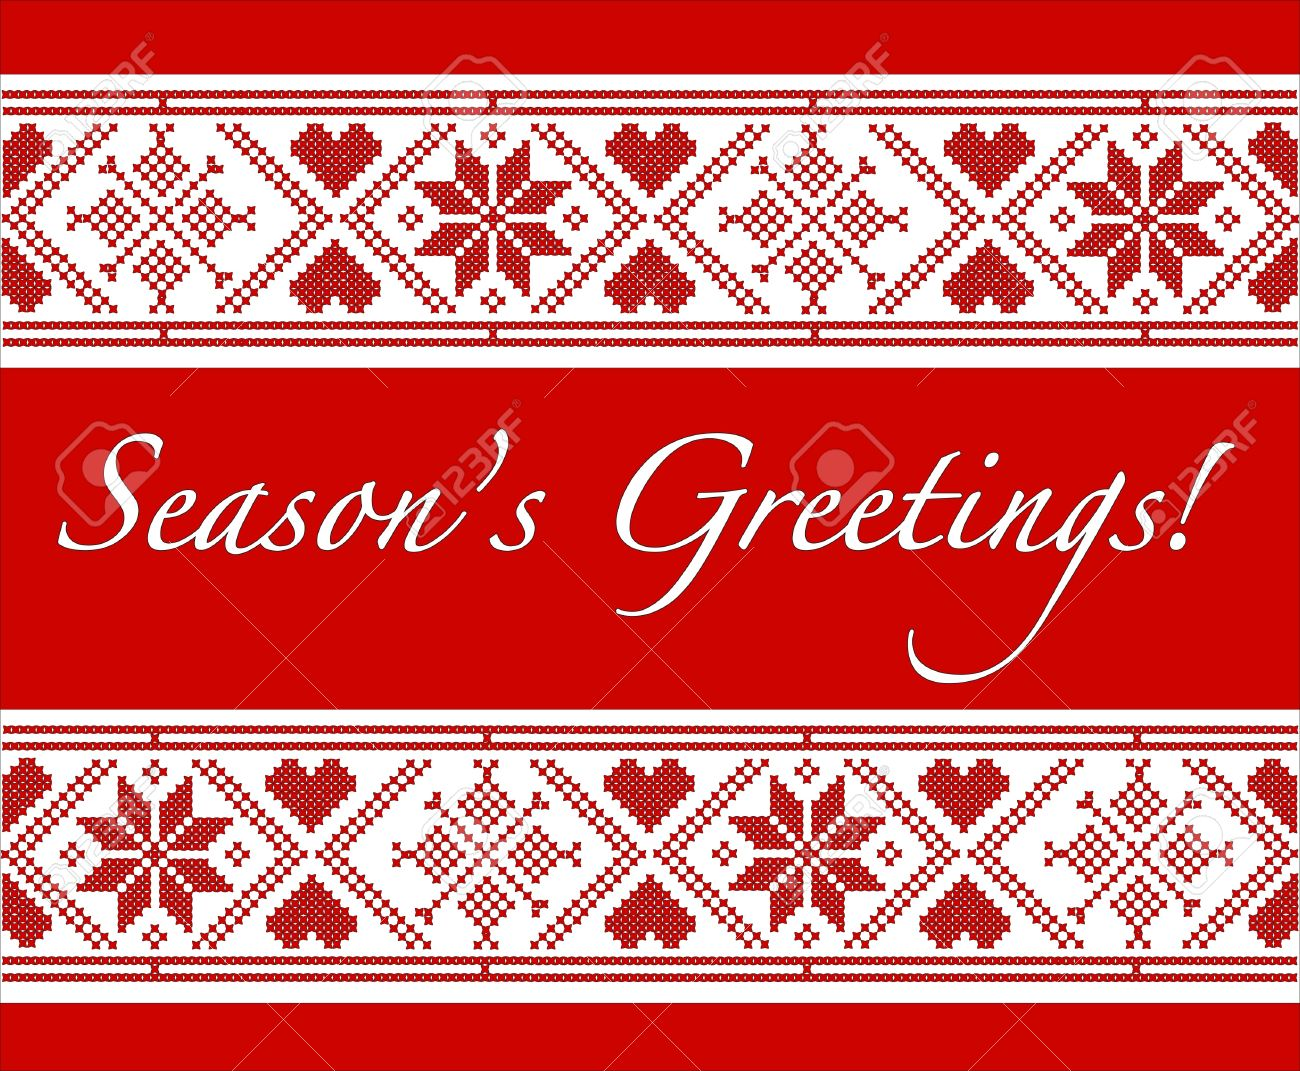 Seasons greetings christmas card with scandinavian style cross seasons greetings christmas card with scandinavian style cross stitch eps10 vector format fully editable for insersion of your own text m4hsunfo Image collections